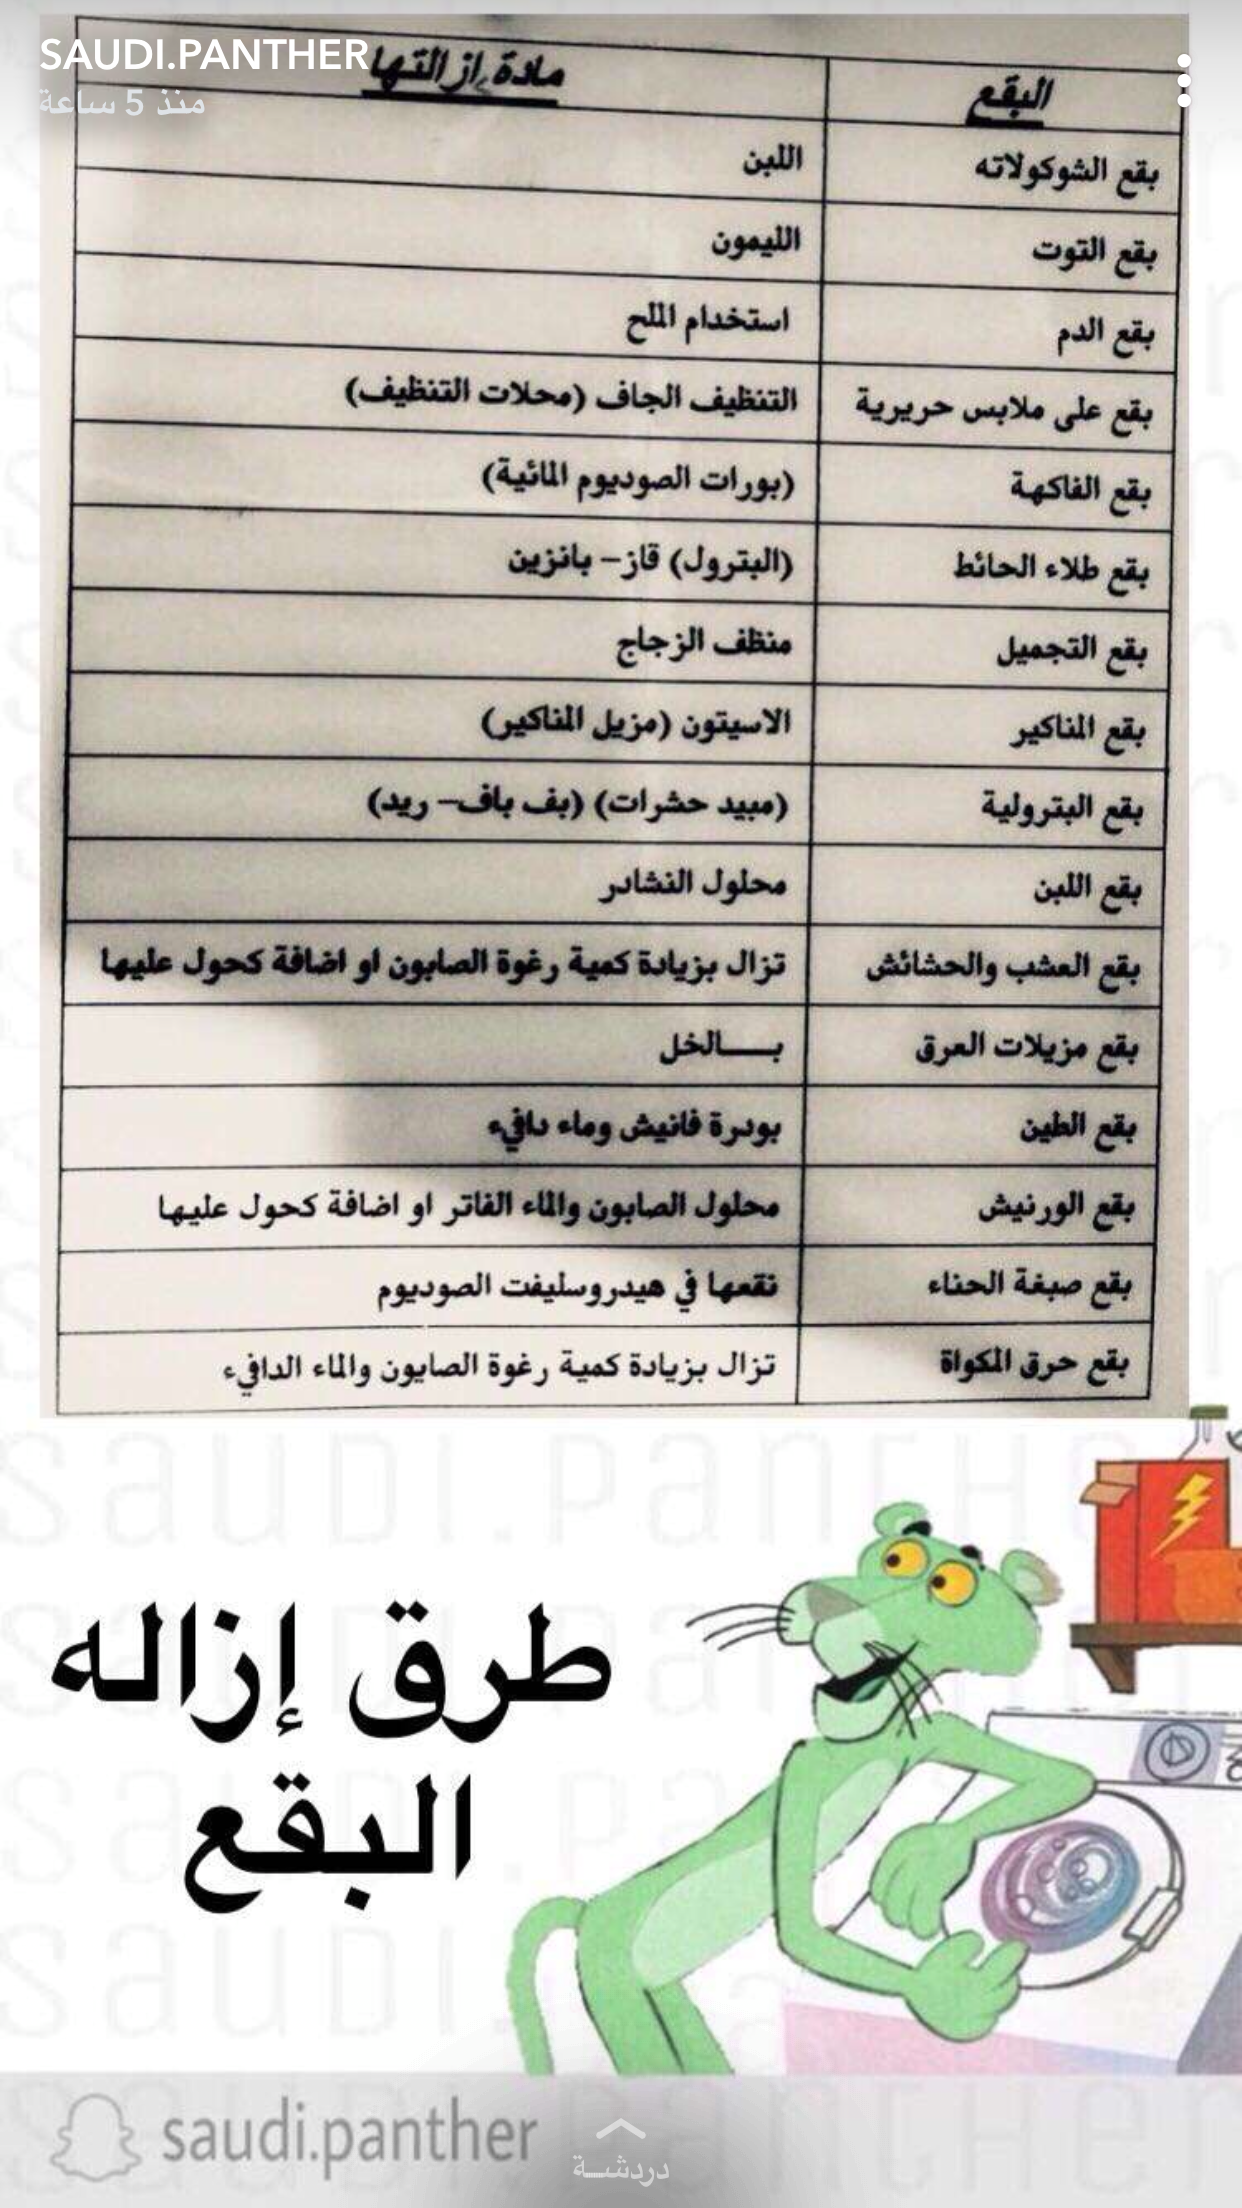 Pin By Zoozy On ازاله البقع House Cleaning Checklist House Cleaning Tips Useful Life Hacks